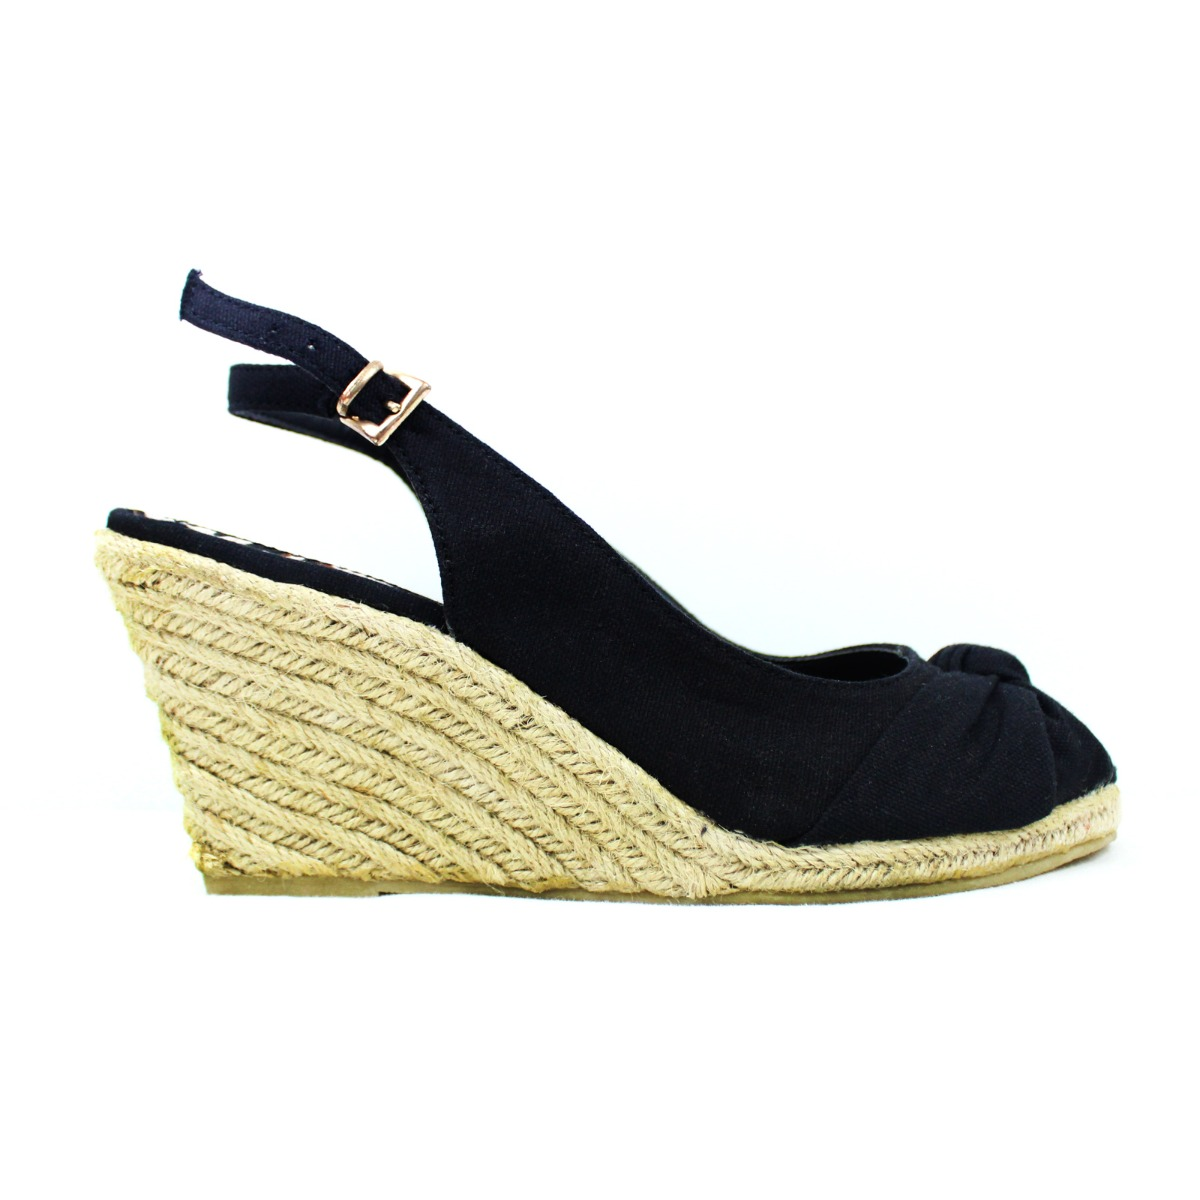 150b2f5ee060 Details about Womens Black Wedge Espadrilles Mid Heel Summer Sandals Ankle  Strap UK Size 4 5 6